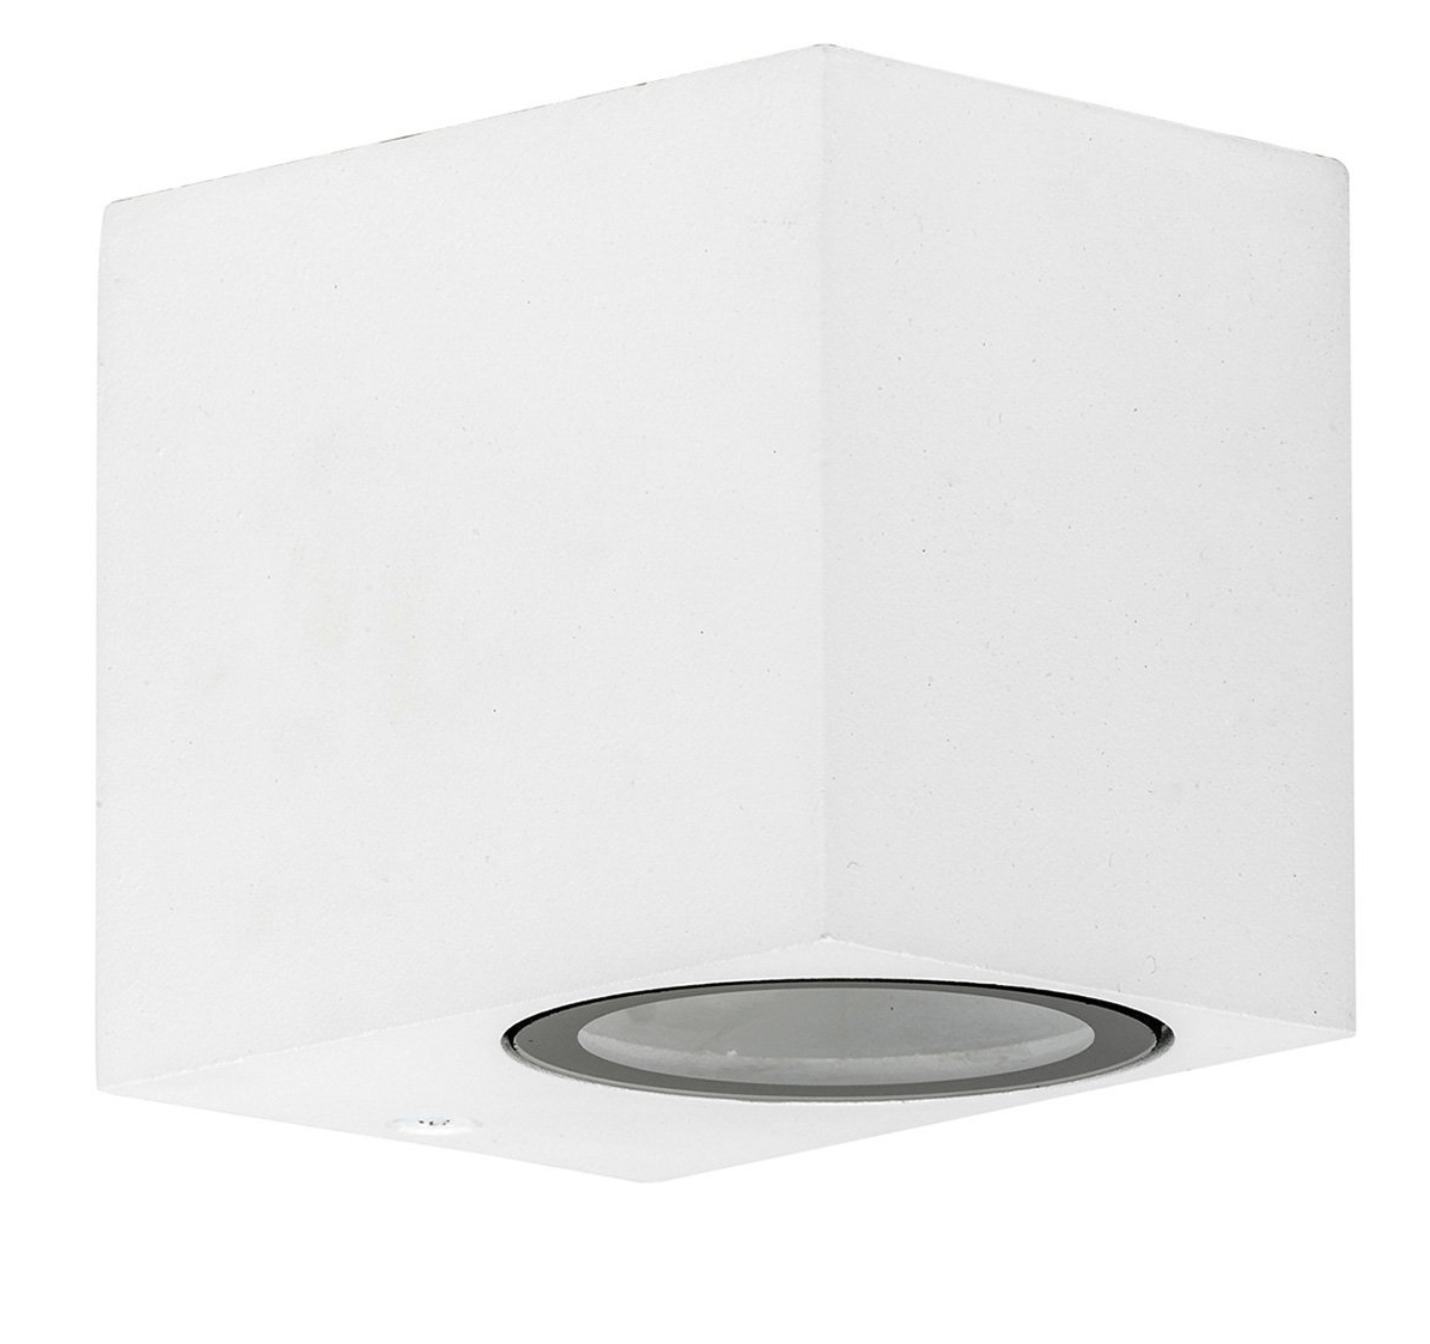 Exterior Wall Light ACCORD - Fixed Down Wall Light Downlights